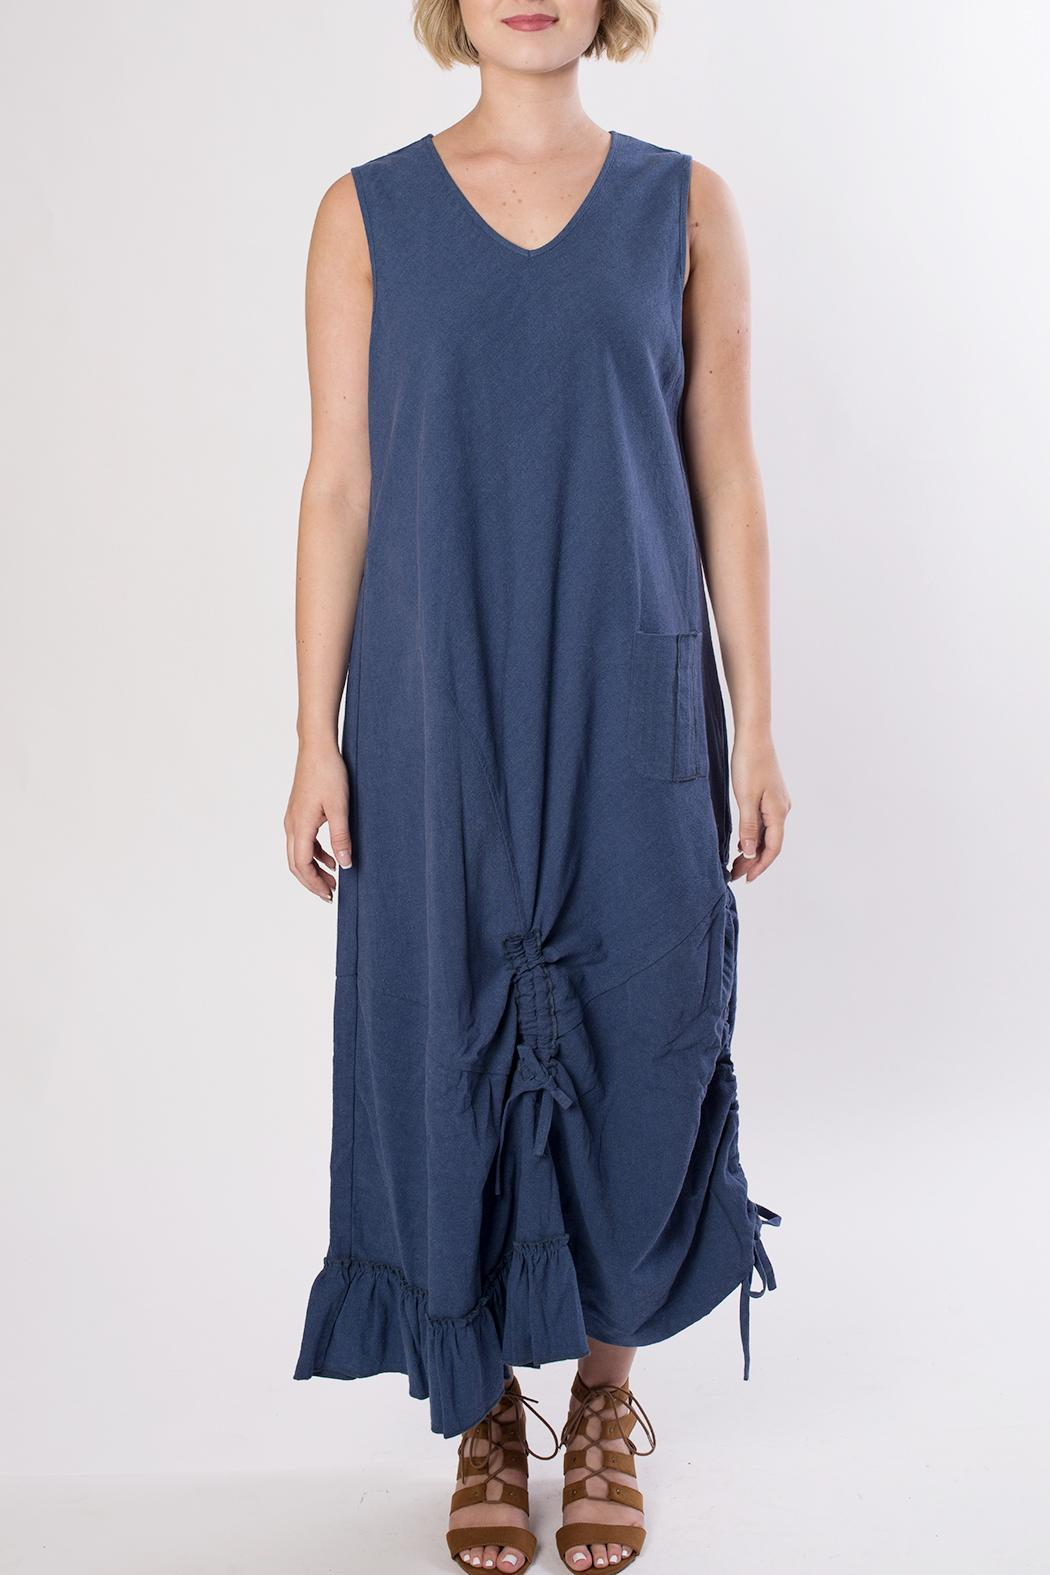 Dorman Blue Midi Dress - Main Image